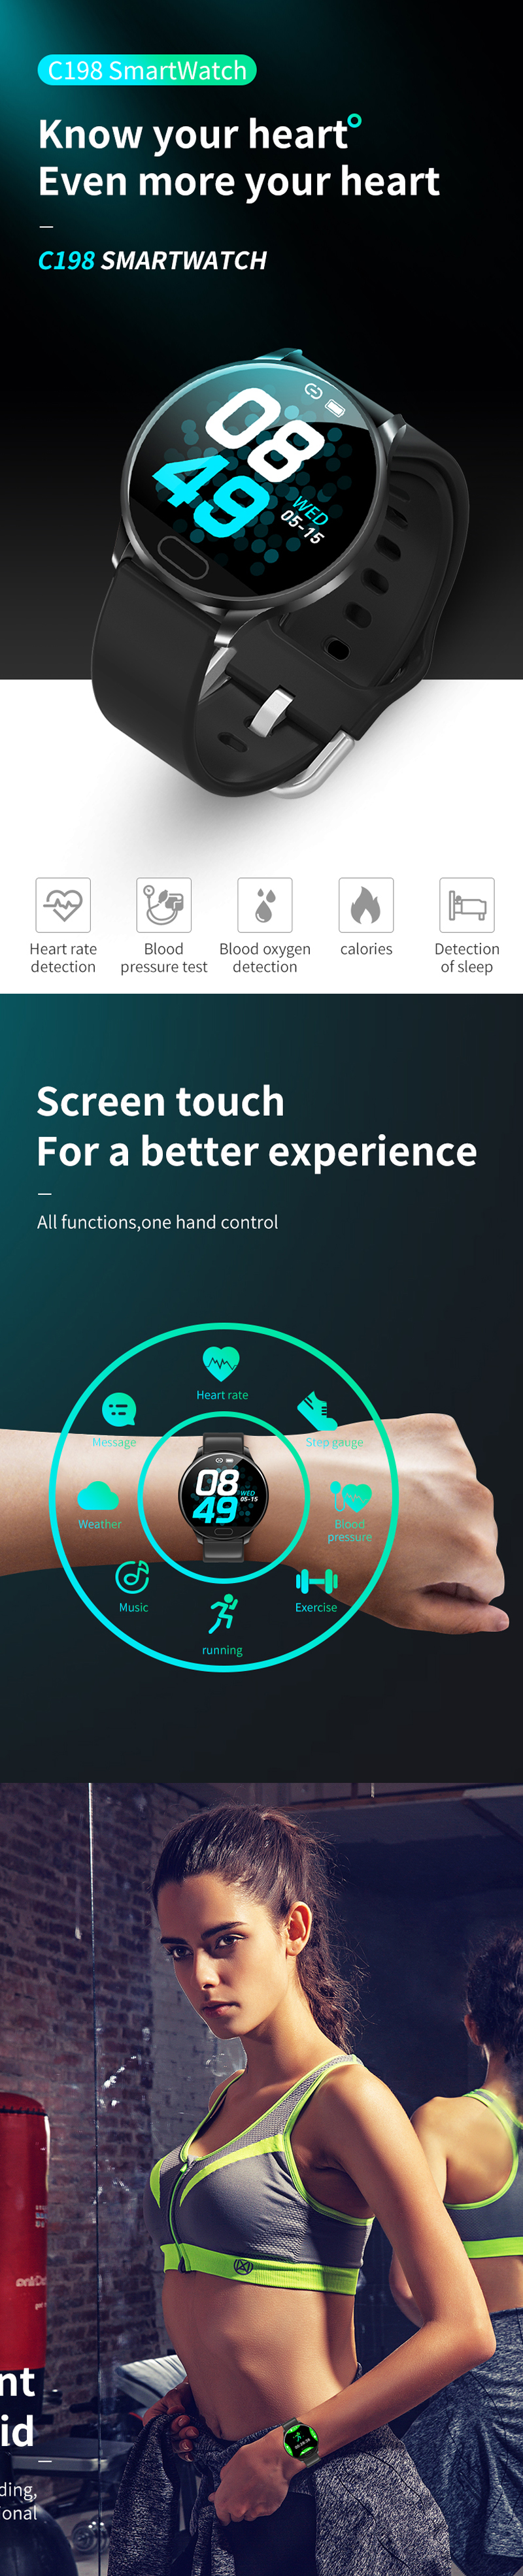 XANES® C198 1.22'' Color Touch Screen IP67 Waterproof Smart Watch BP spO2 Monitor Remote Camera Find Phone Sports Fitness Bracelet